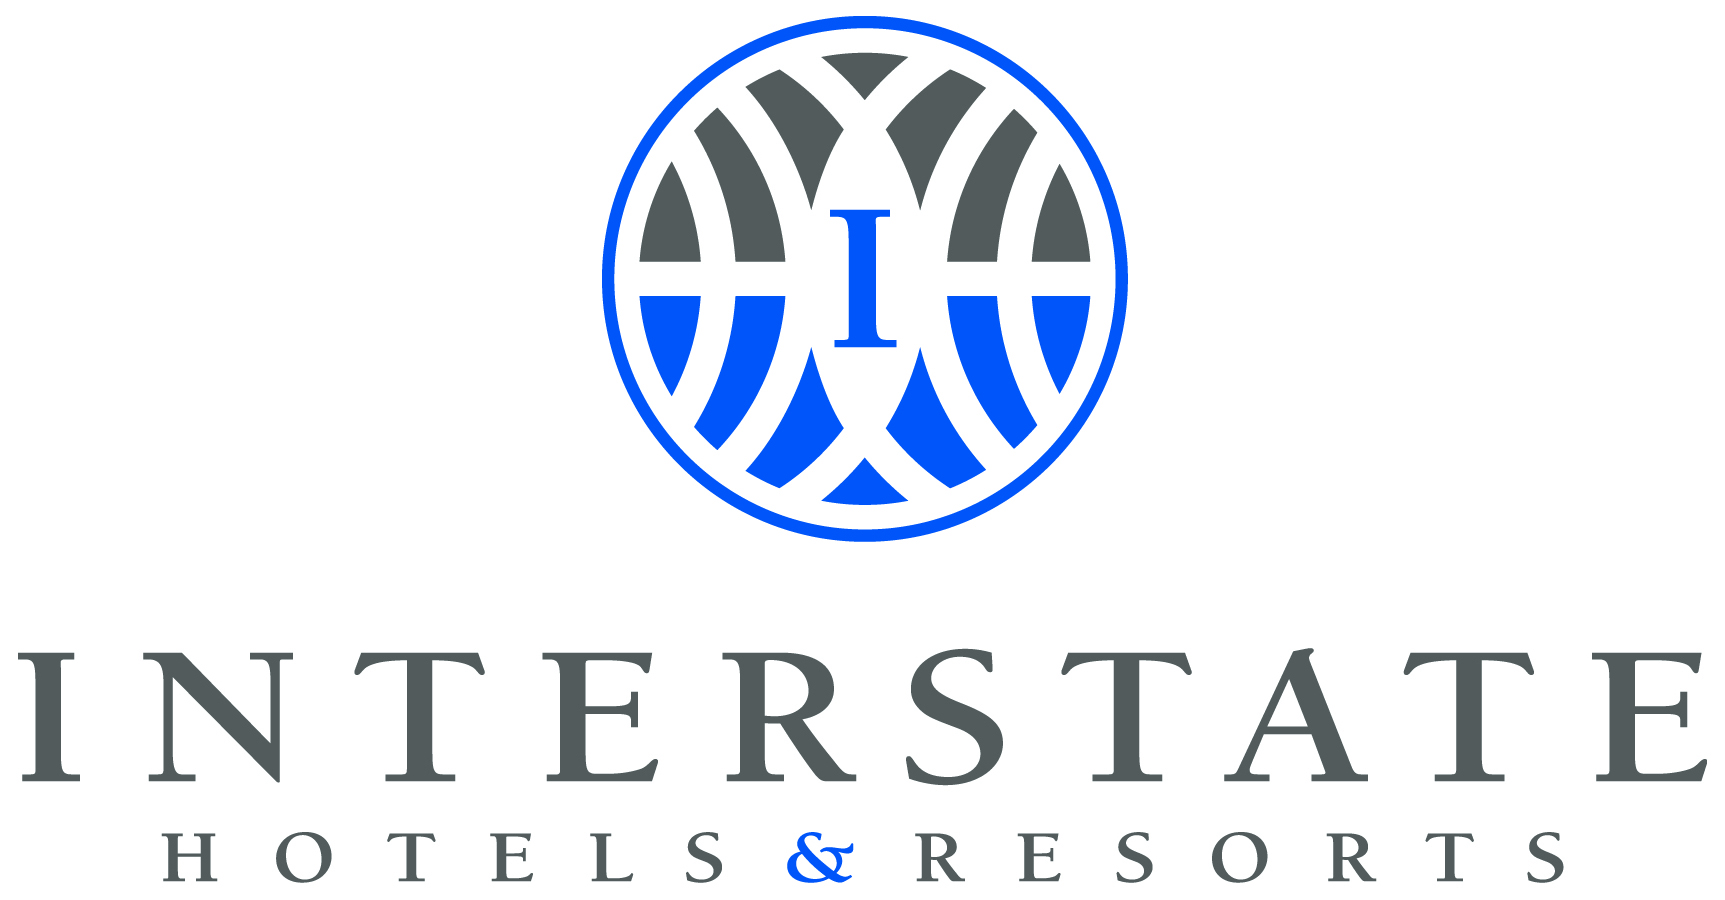 Interstate Hotels & Resorts Acquires Gateway Hospitality Group